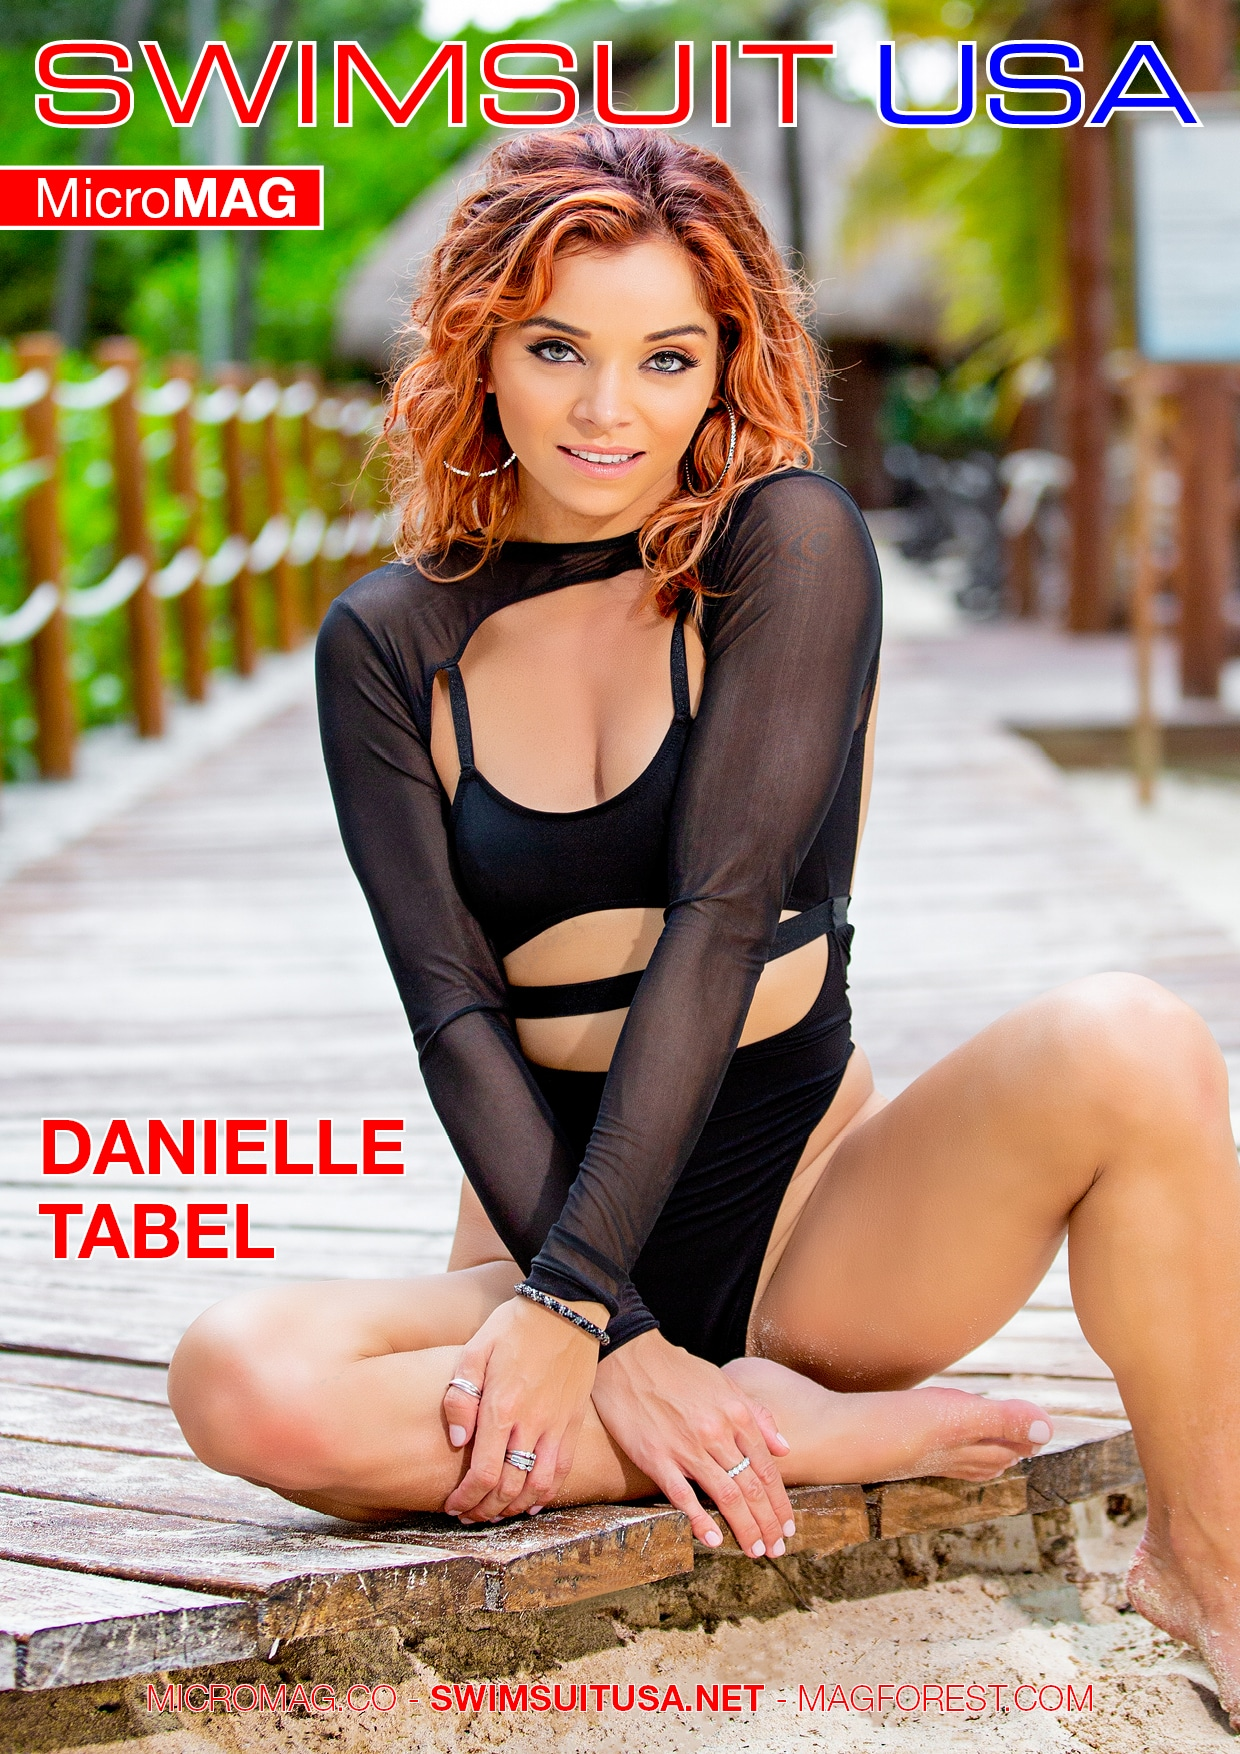 Swimsuit USA MicroMAG - Danielle Tabel 1